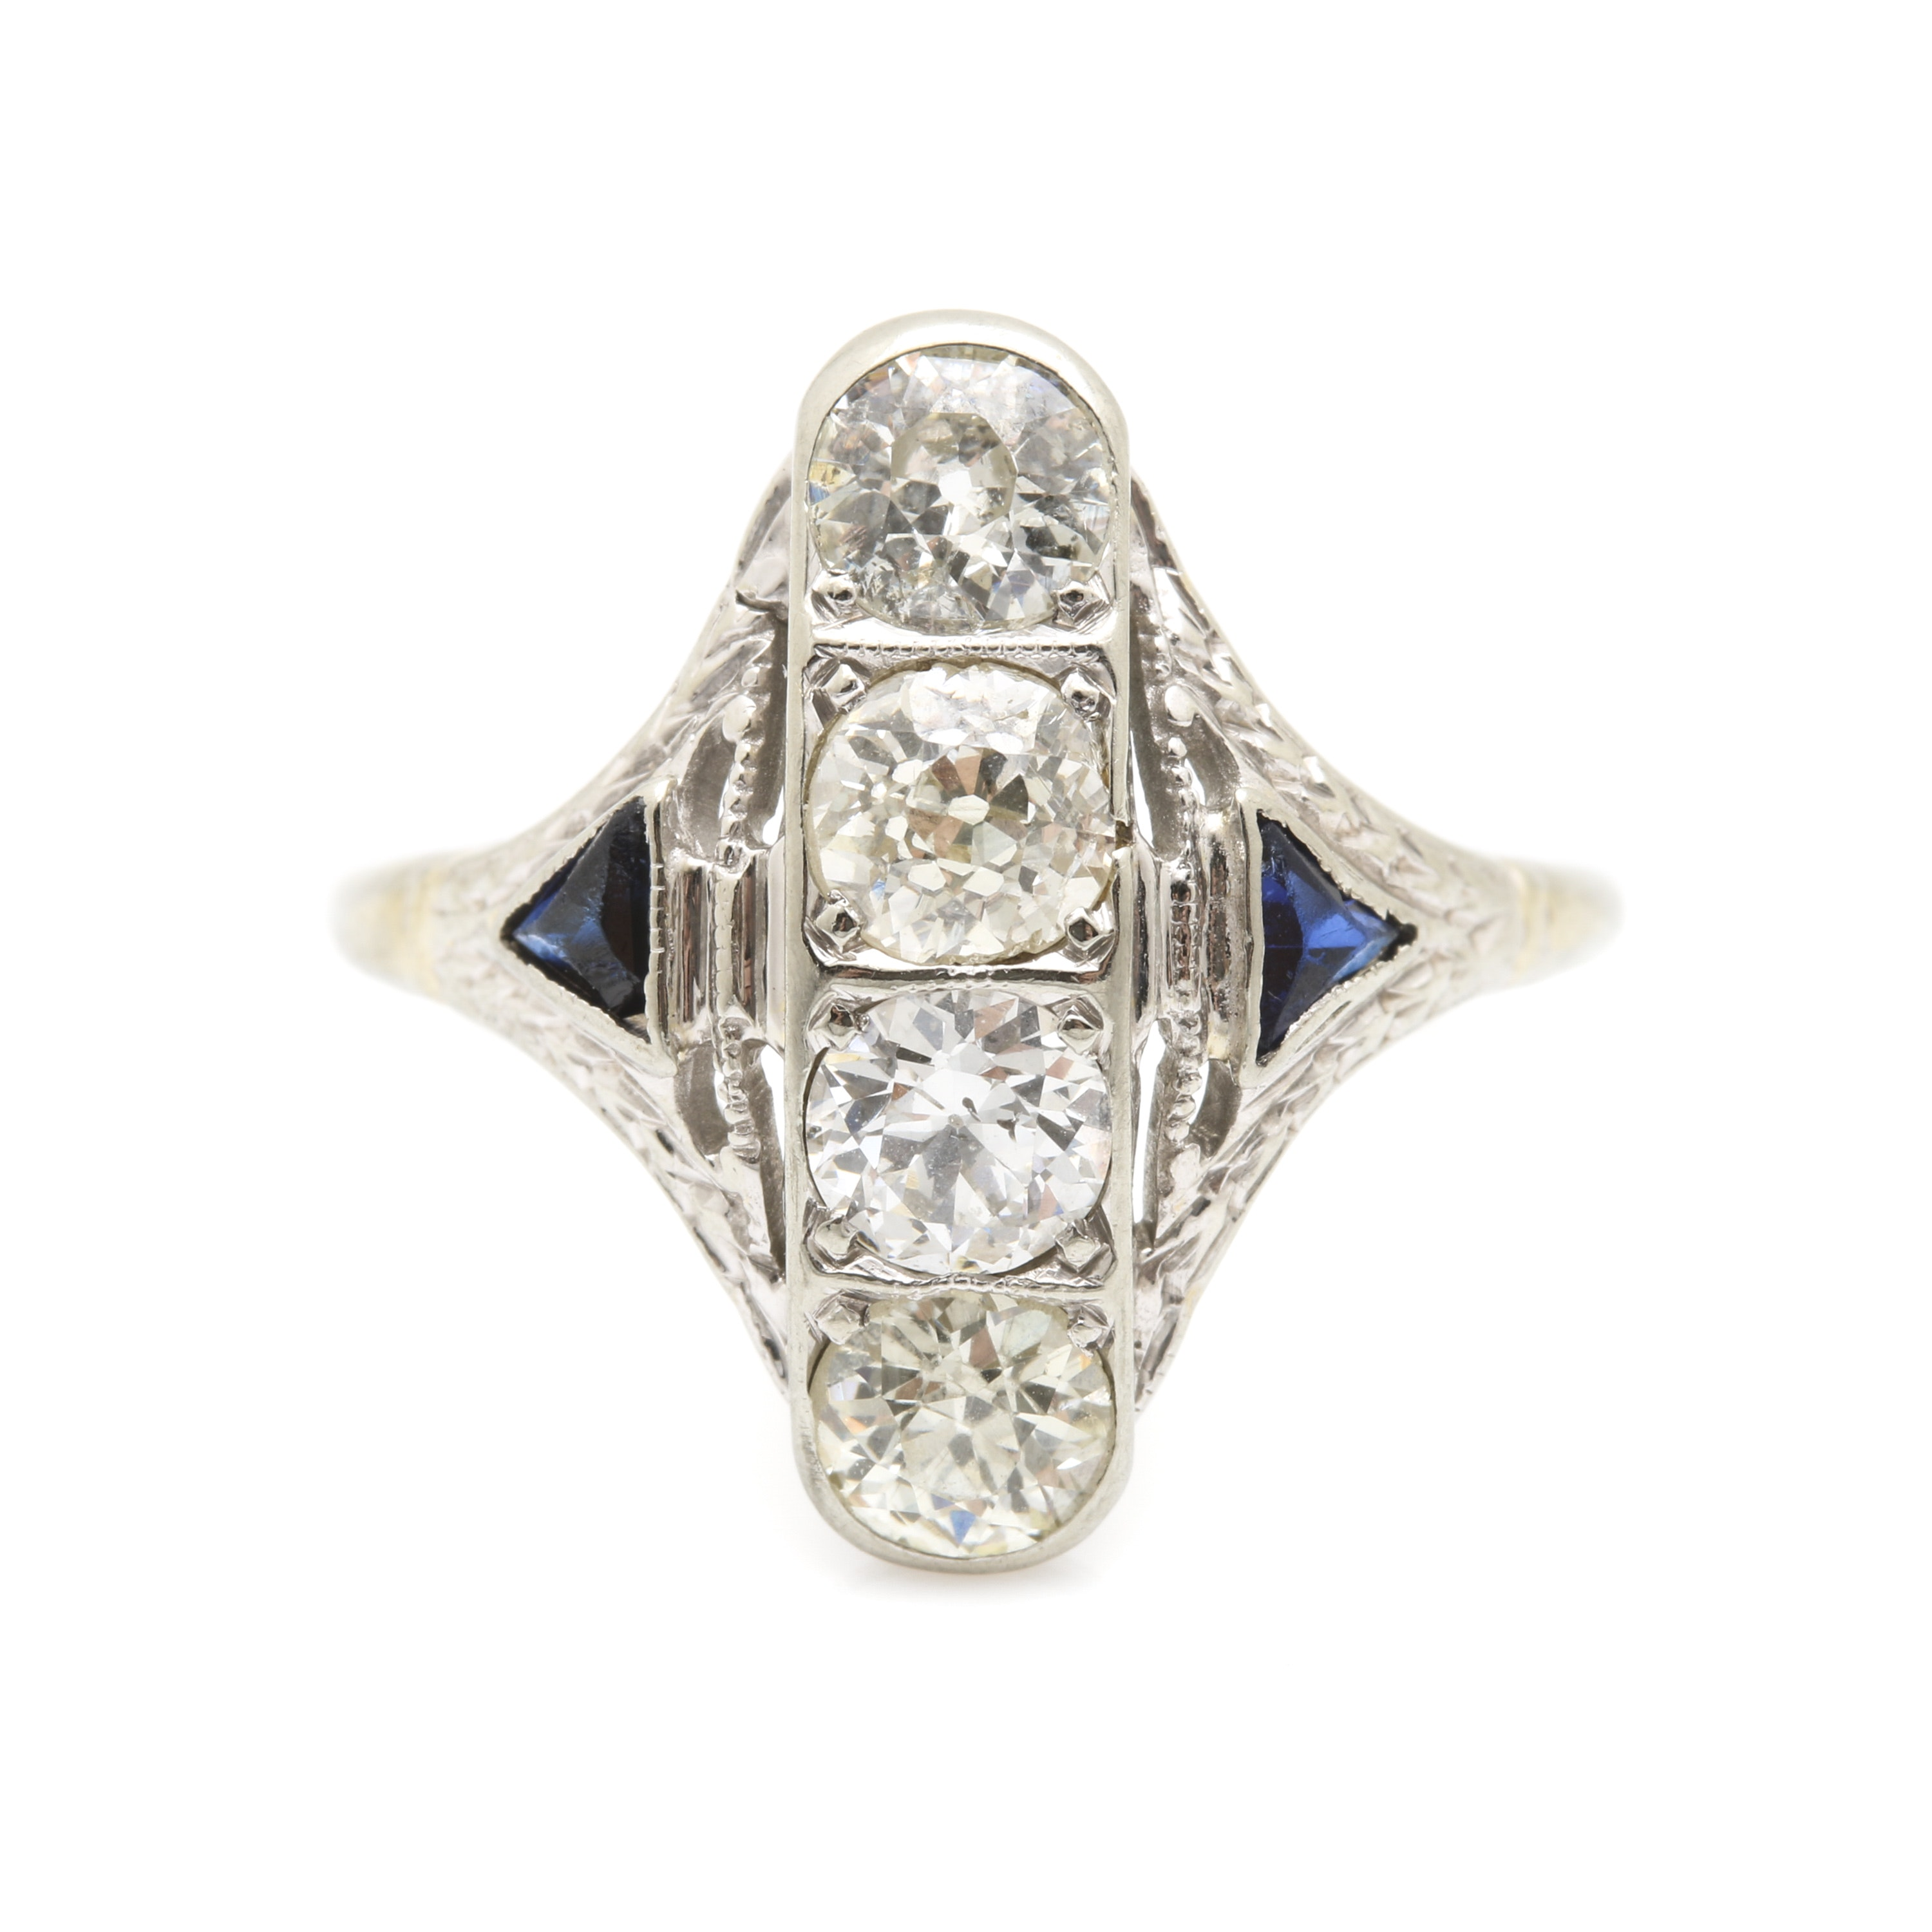 Art Deco 18K White Gold 0.89 CTW Diamond and Sapphire Ring